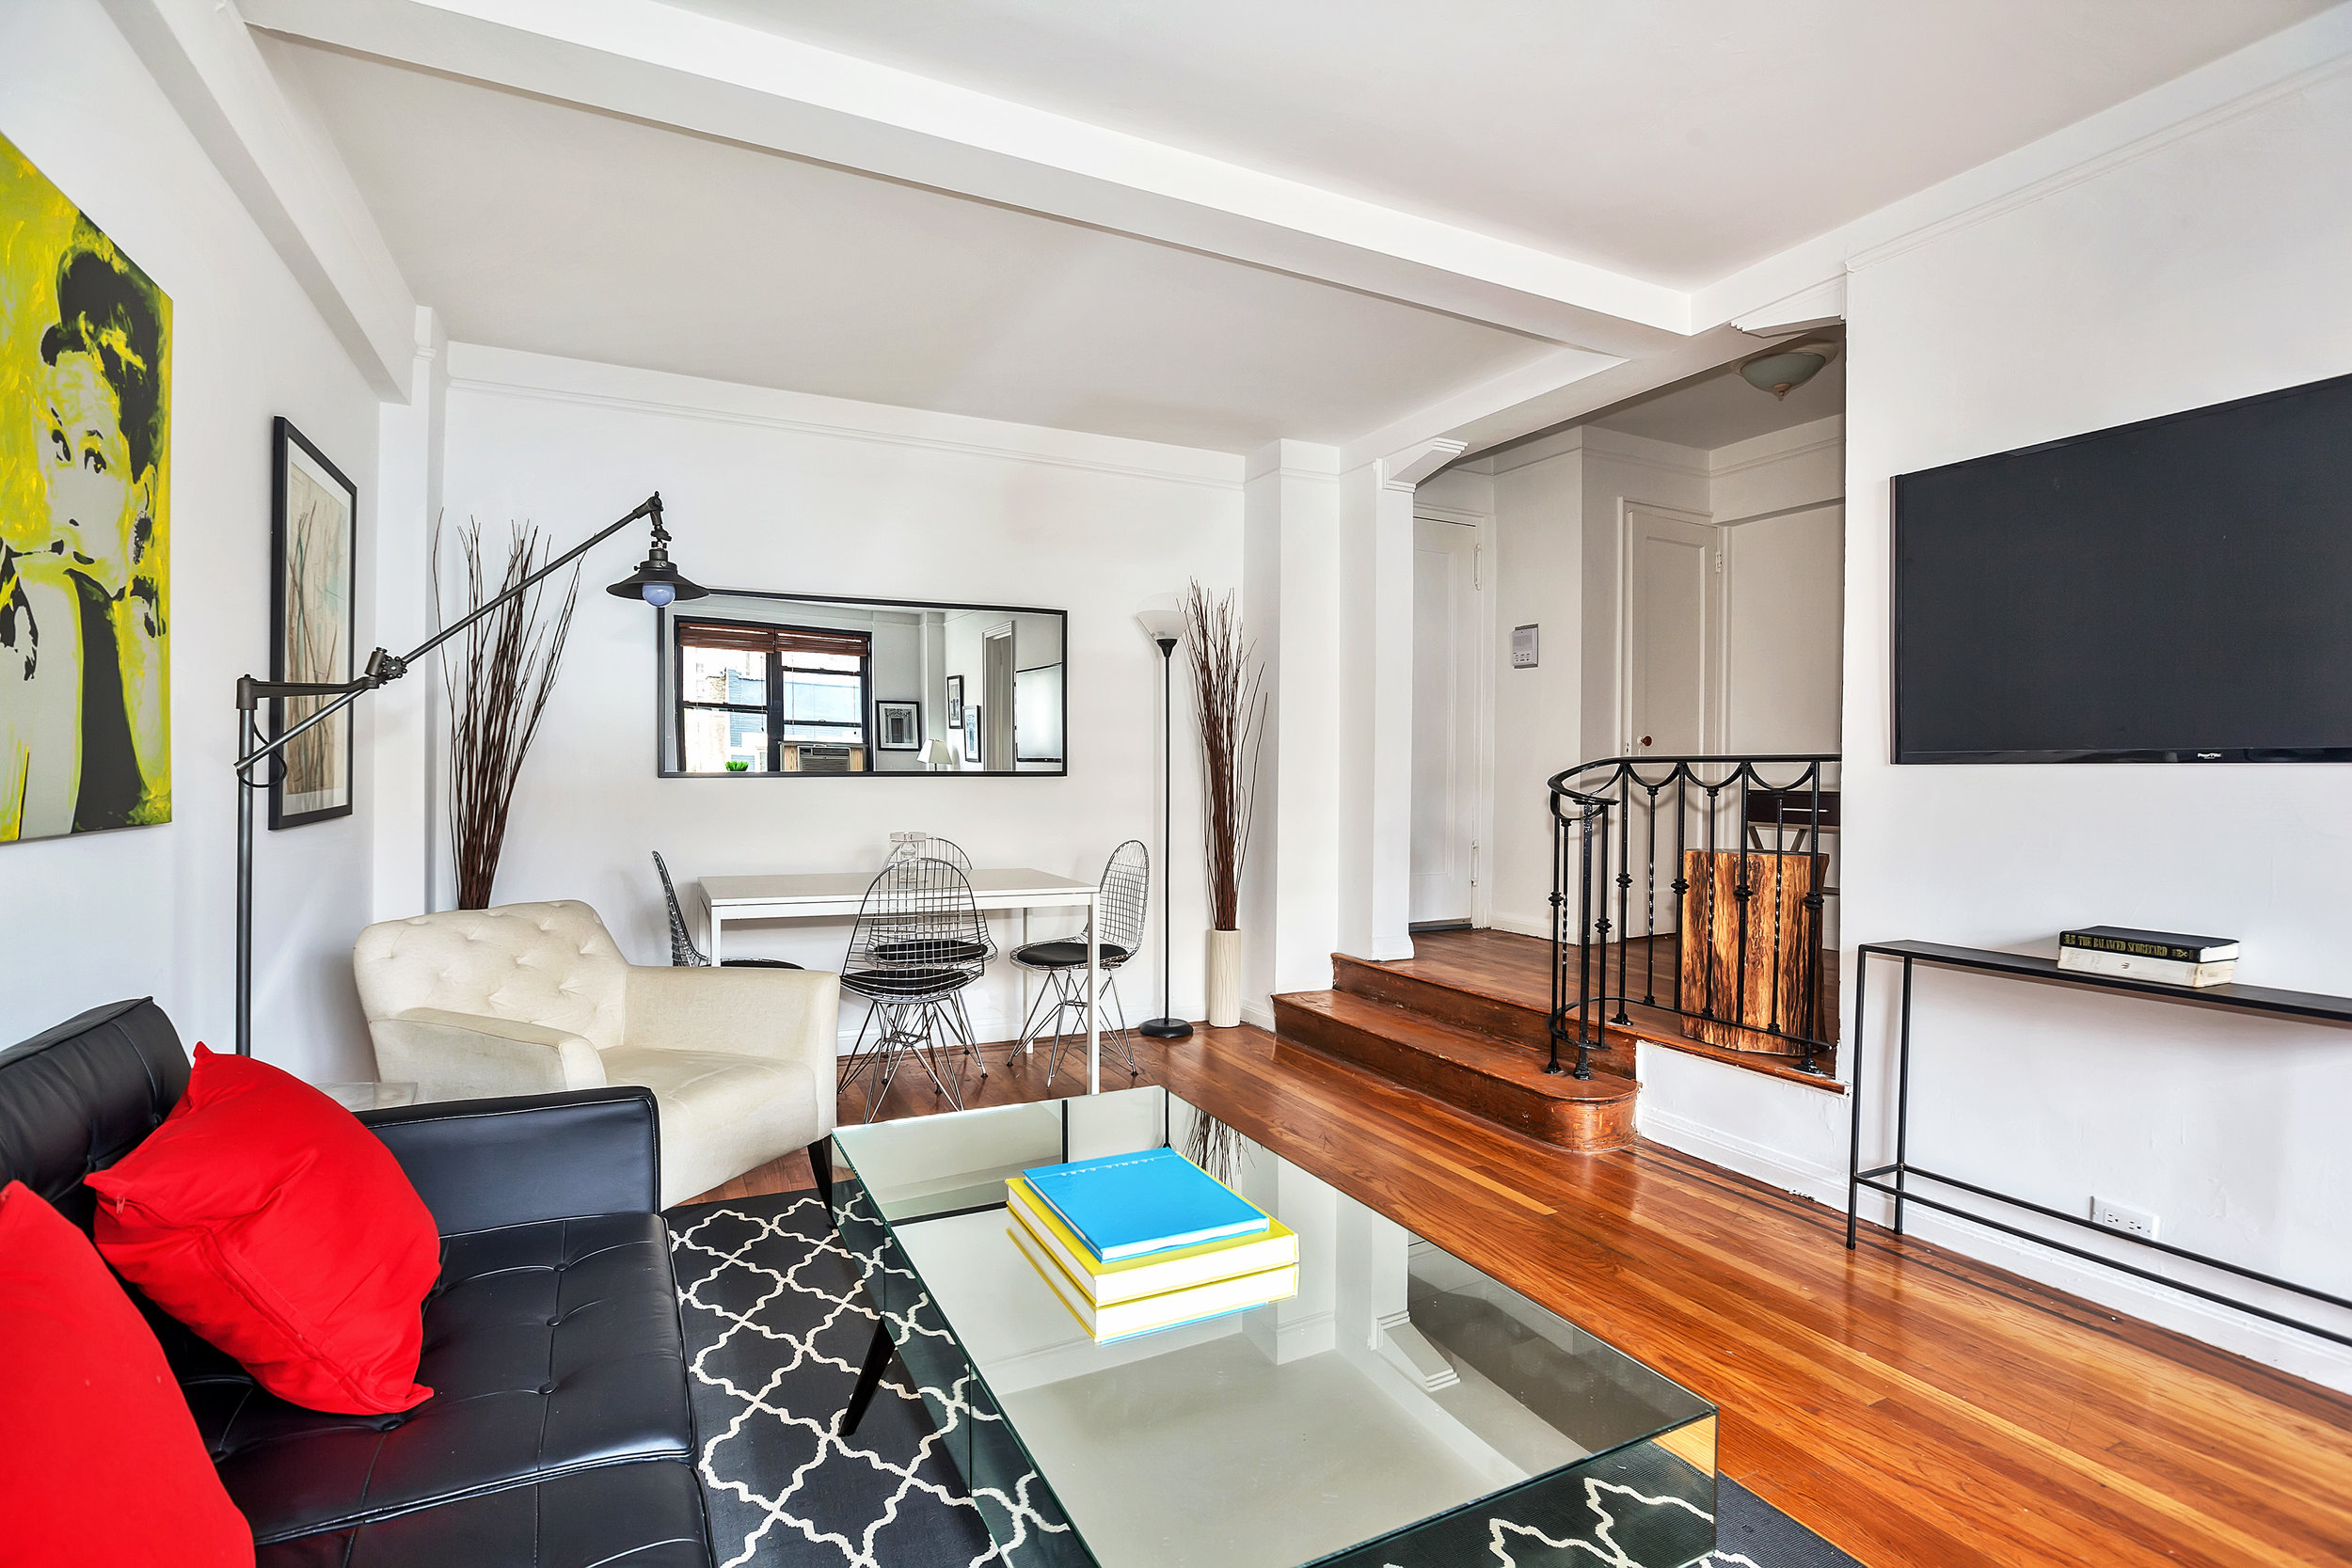 200 West 20th St. #611 - Studio  |  1 BA  |  $539,000